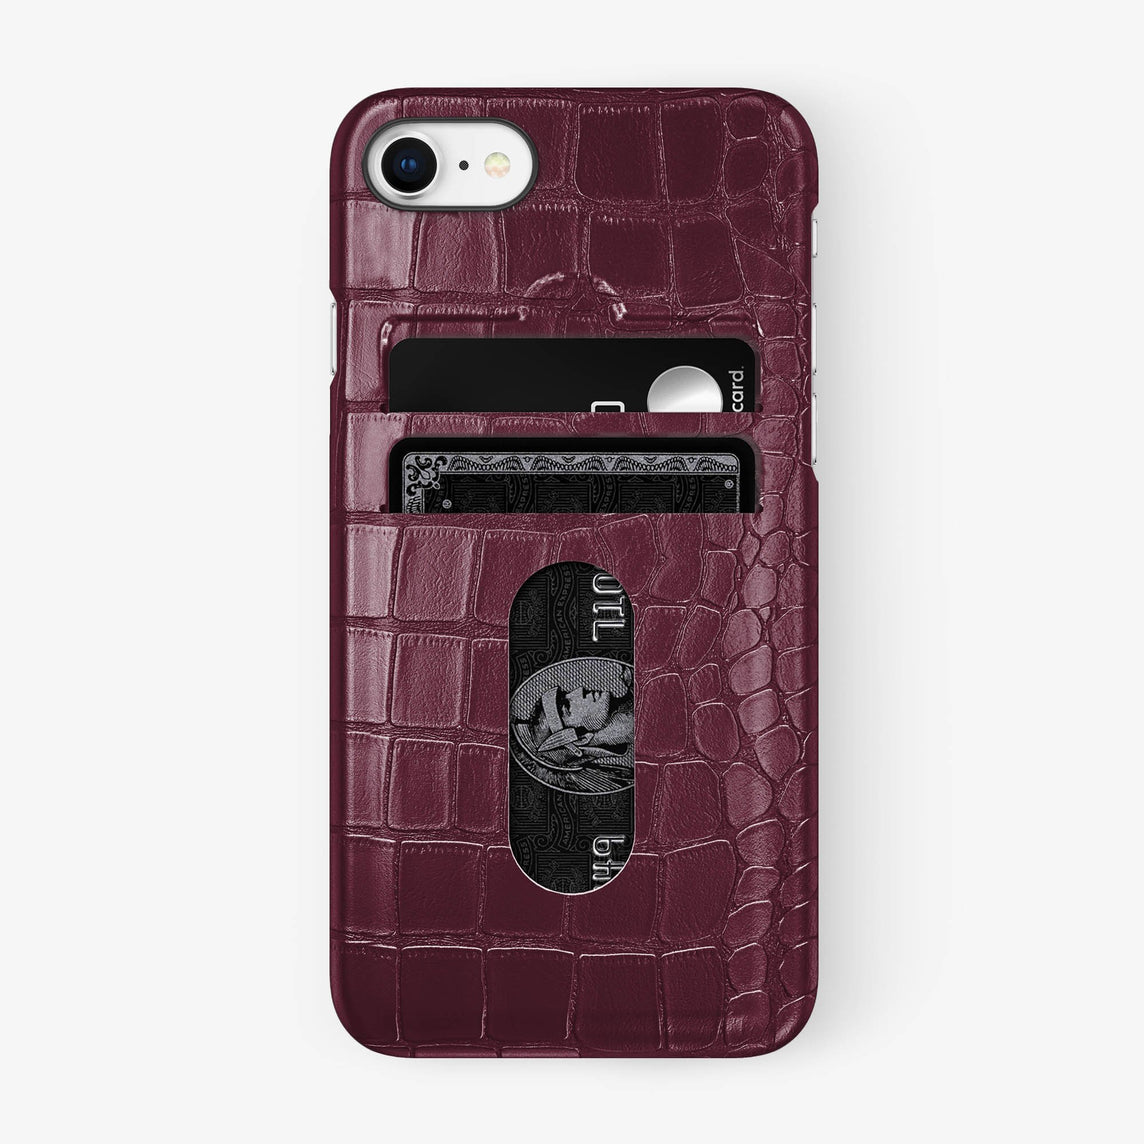 Alligator Card Holder Case iPhone 7/8 | Burgundy - Black - Hadoro